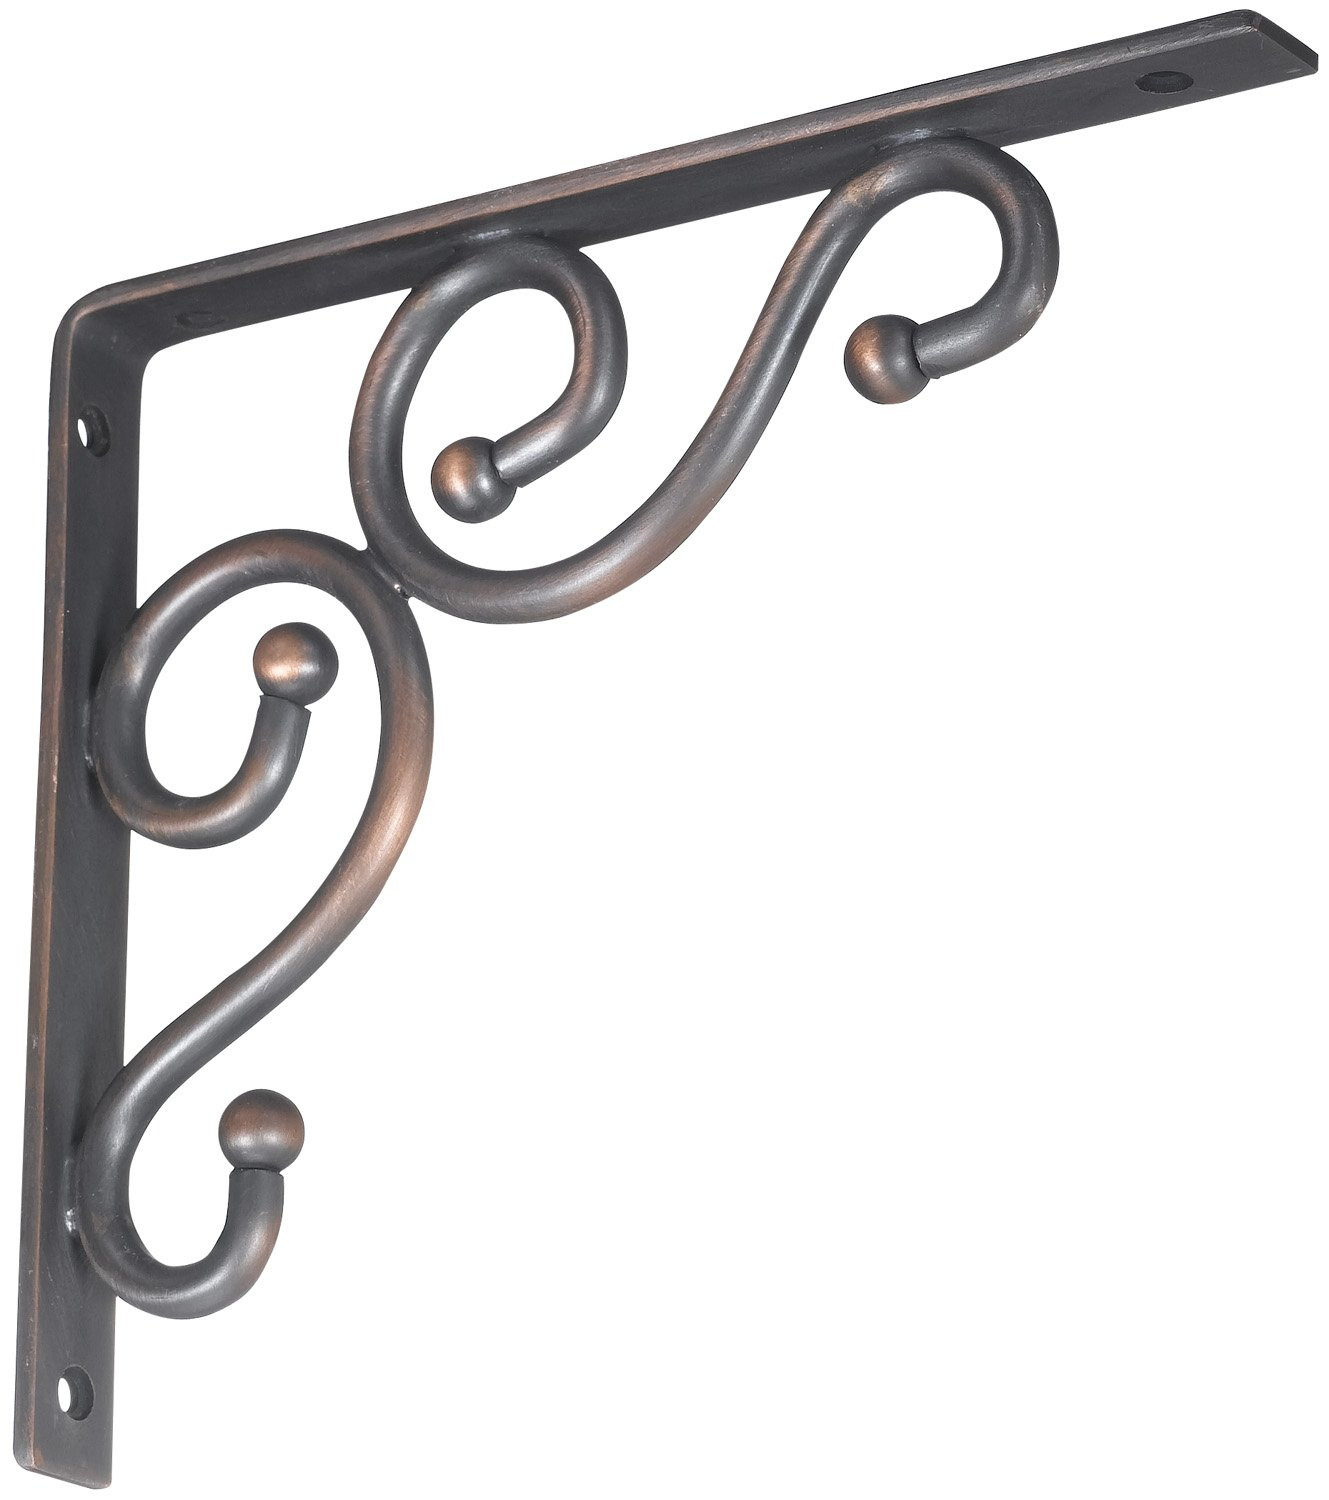 Stanley Hardware S250-592 773 Ornamental Shelf Brackets in Antique Bronze, 7'' x 8''